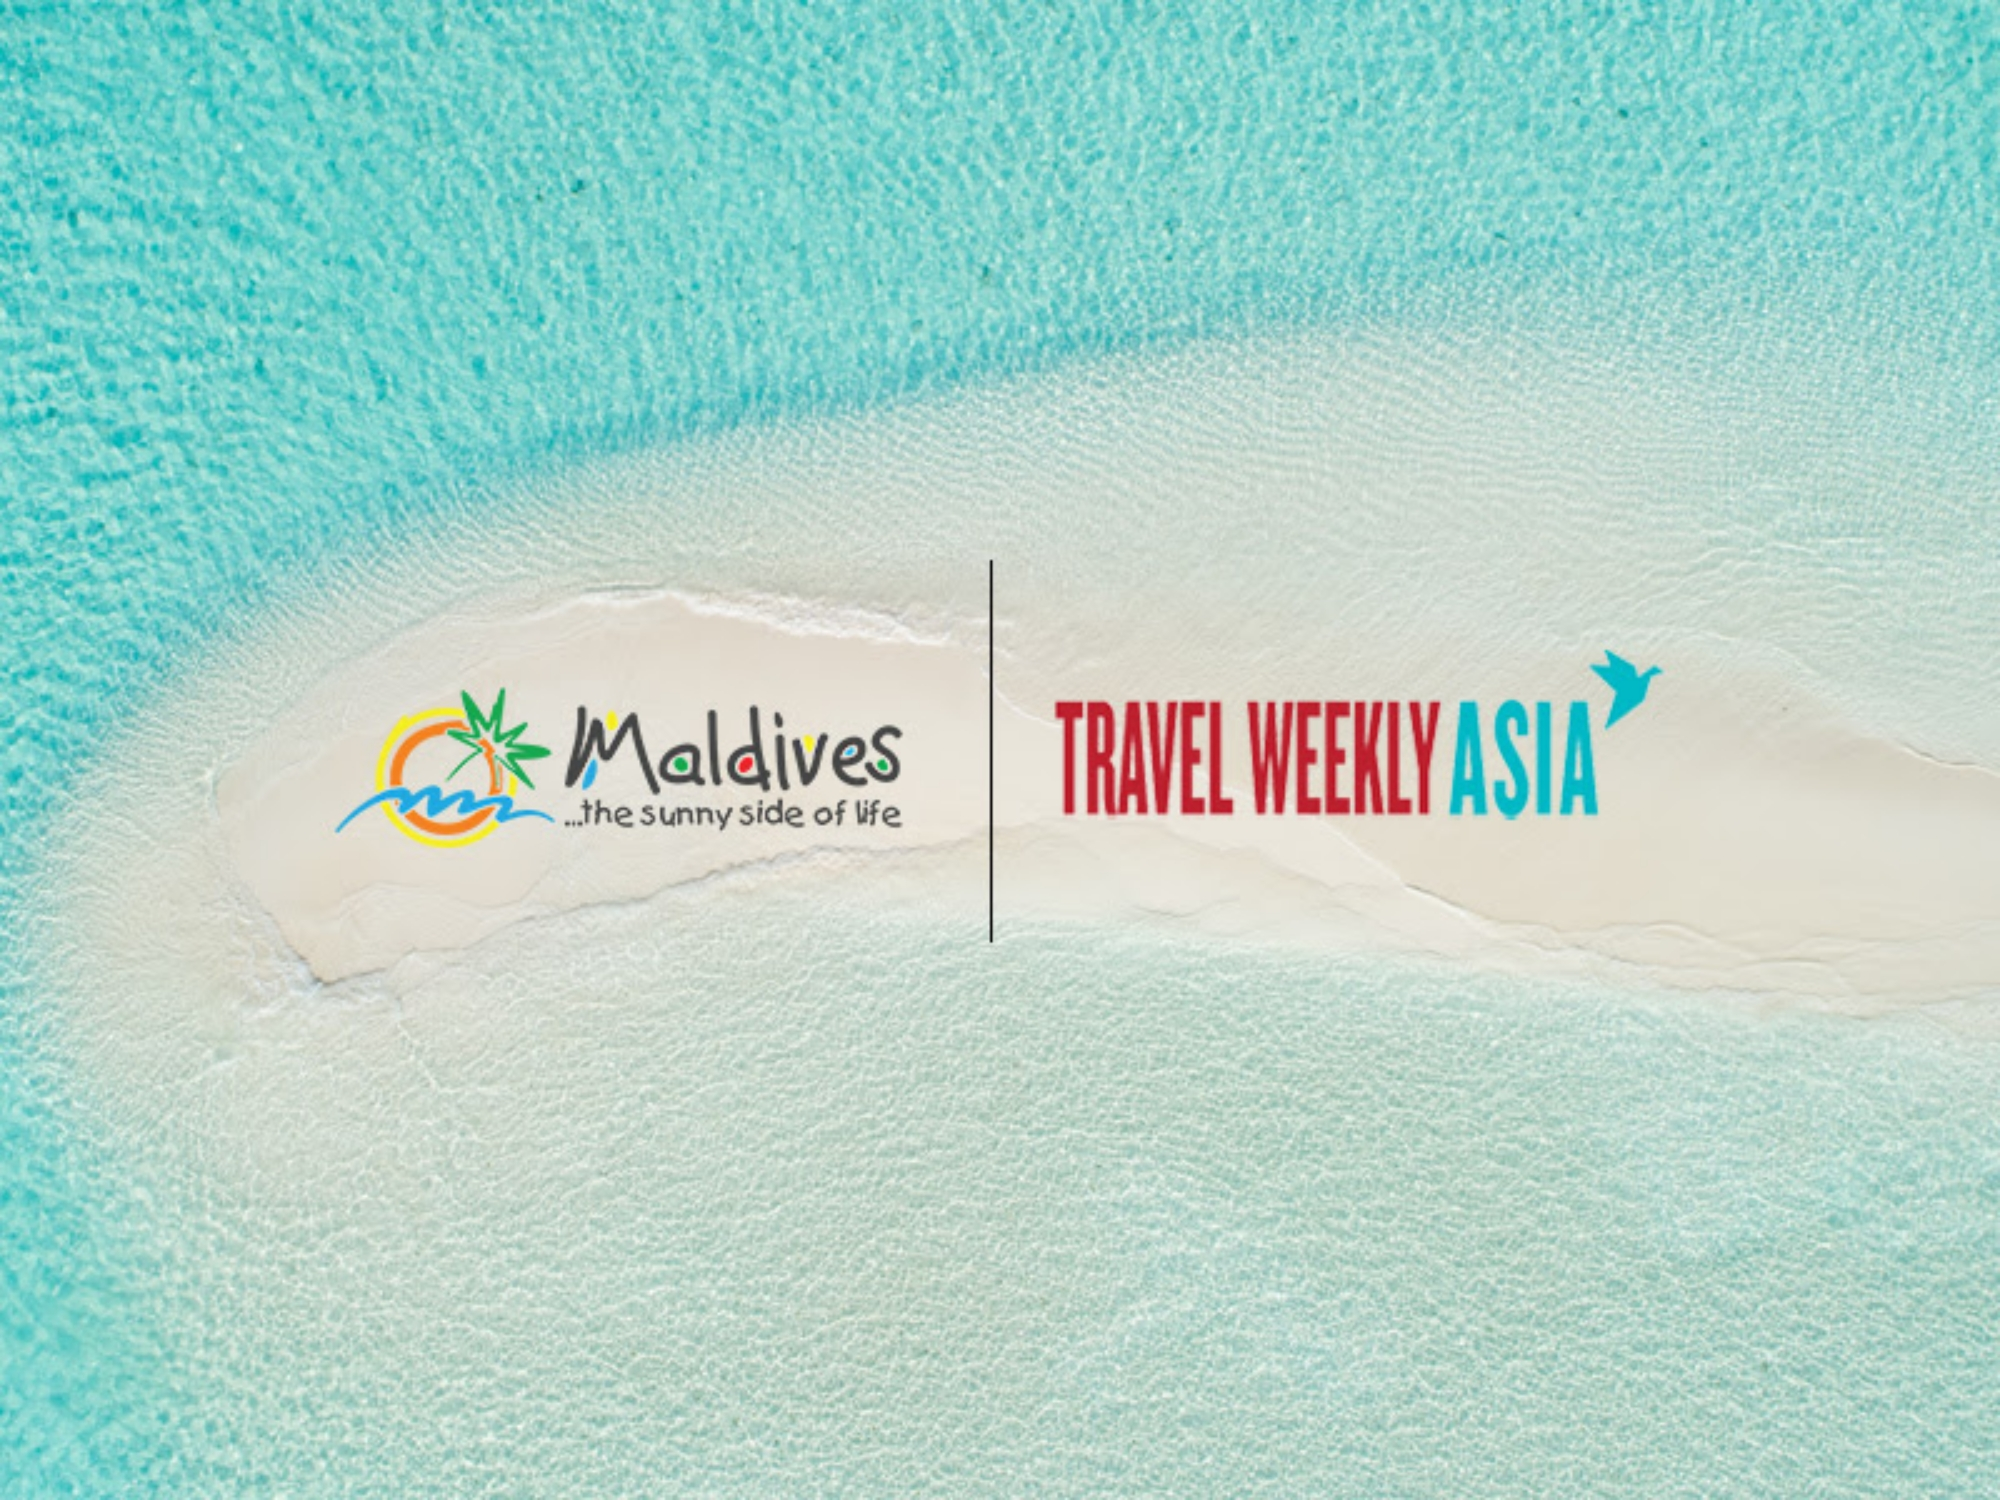 Jaw-dropping islands of Maldives to be featured on Travel Weekly Asia